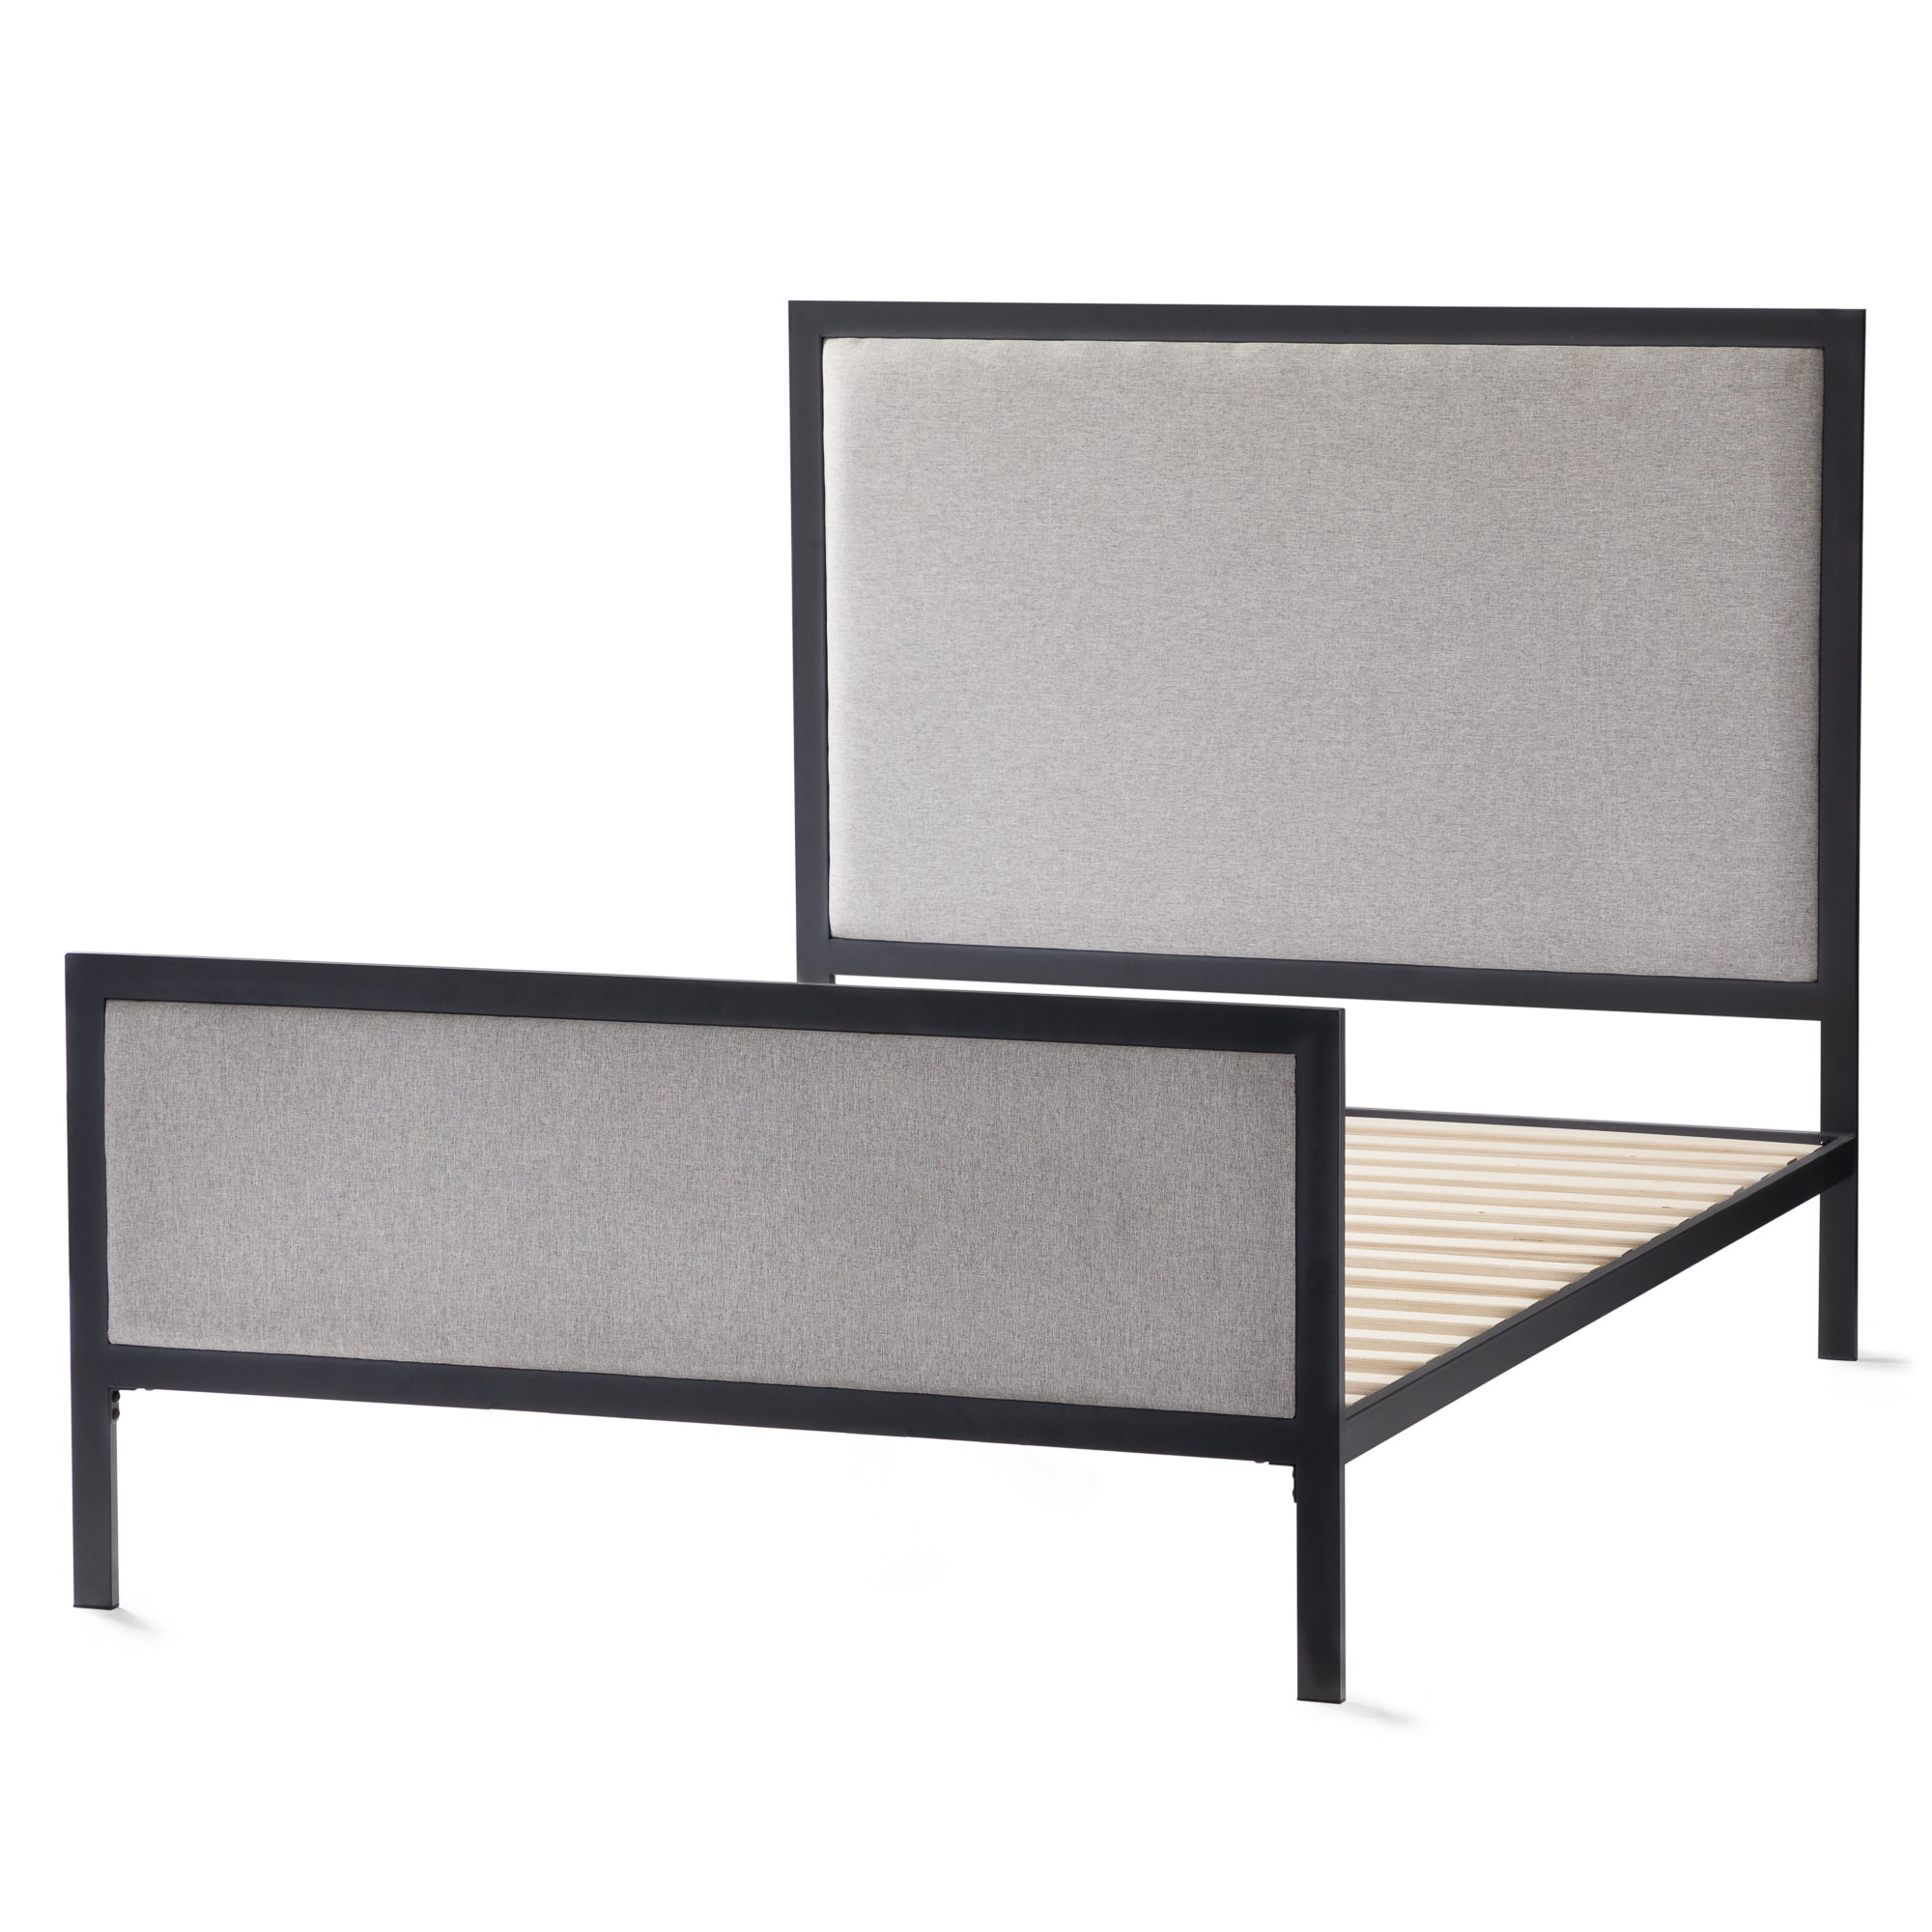 Clarke Upholstered Bed - Malouf by Yogasleep